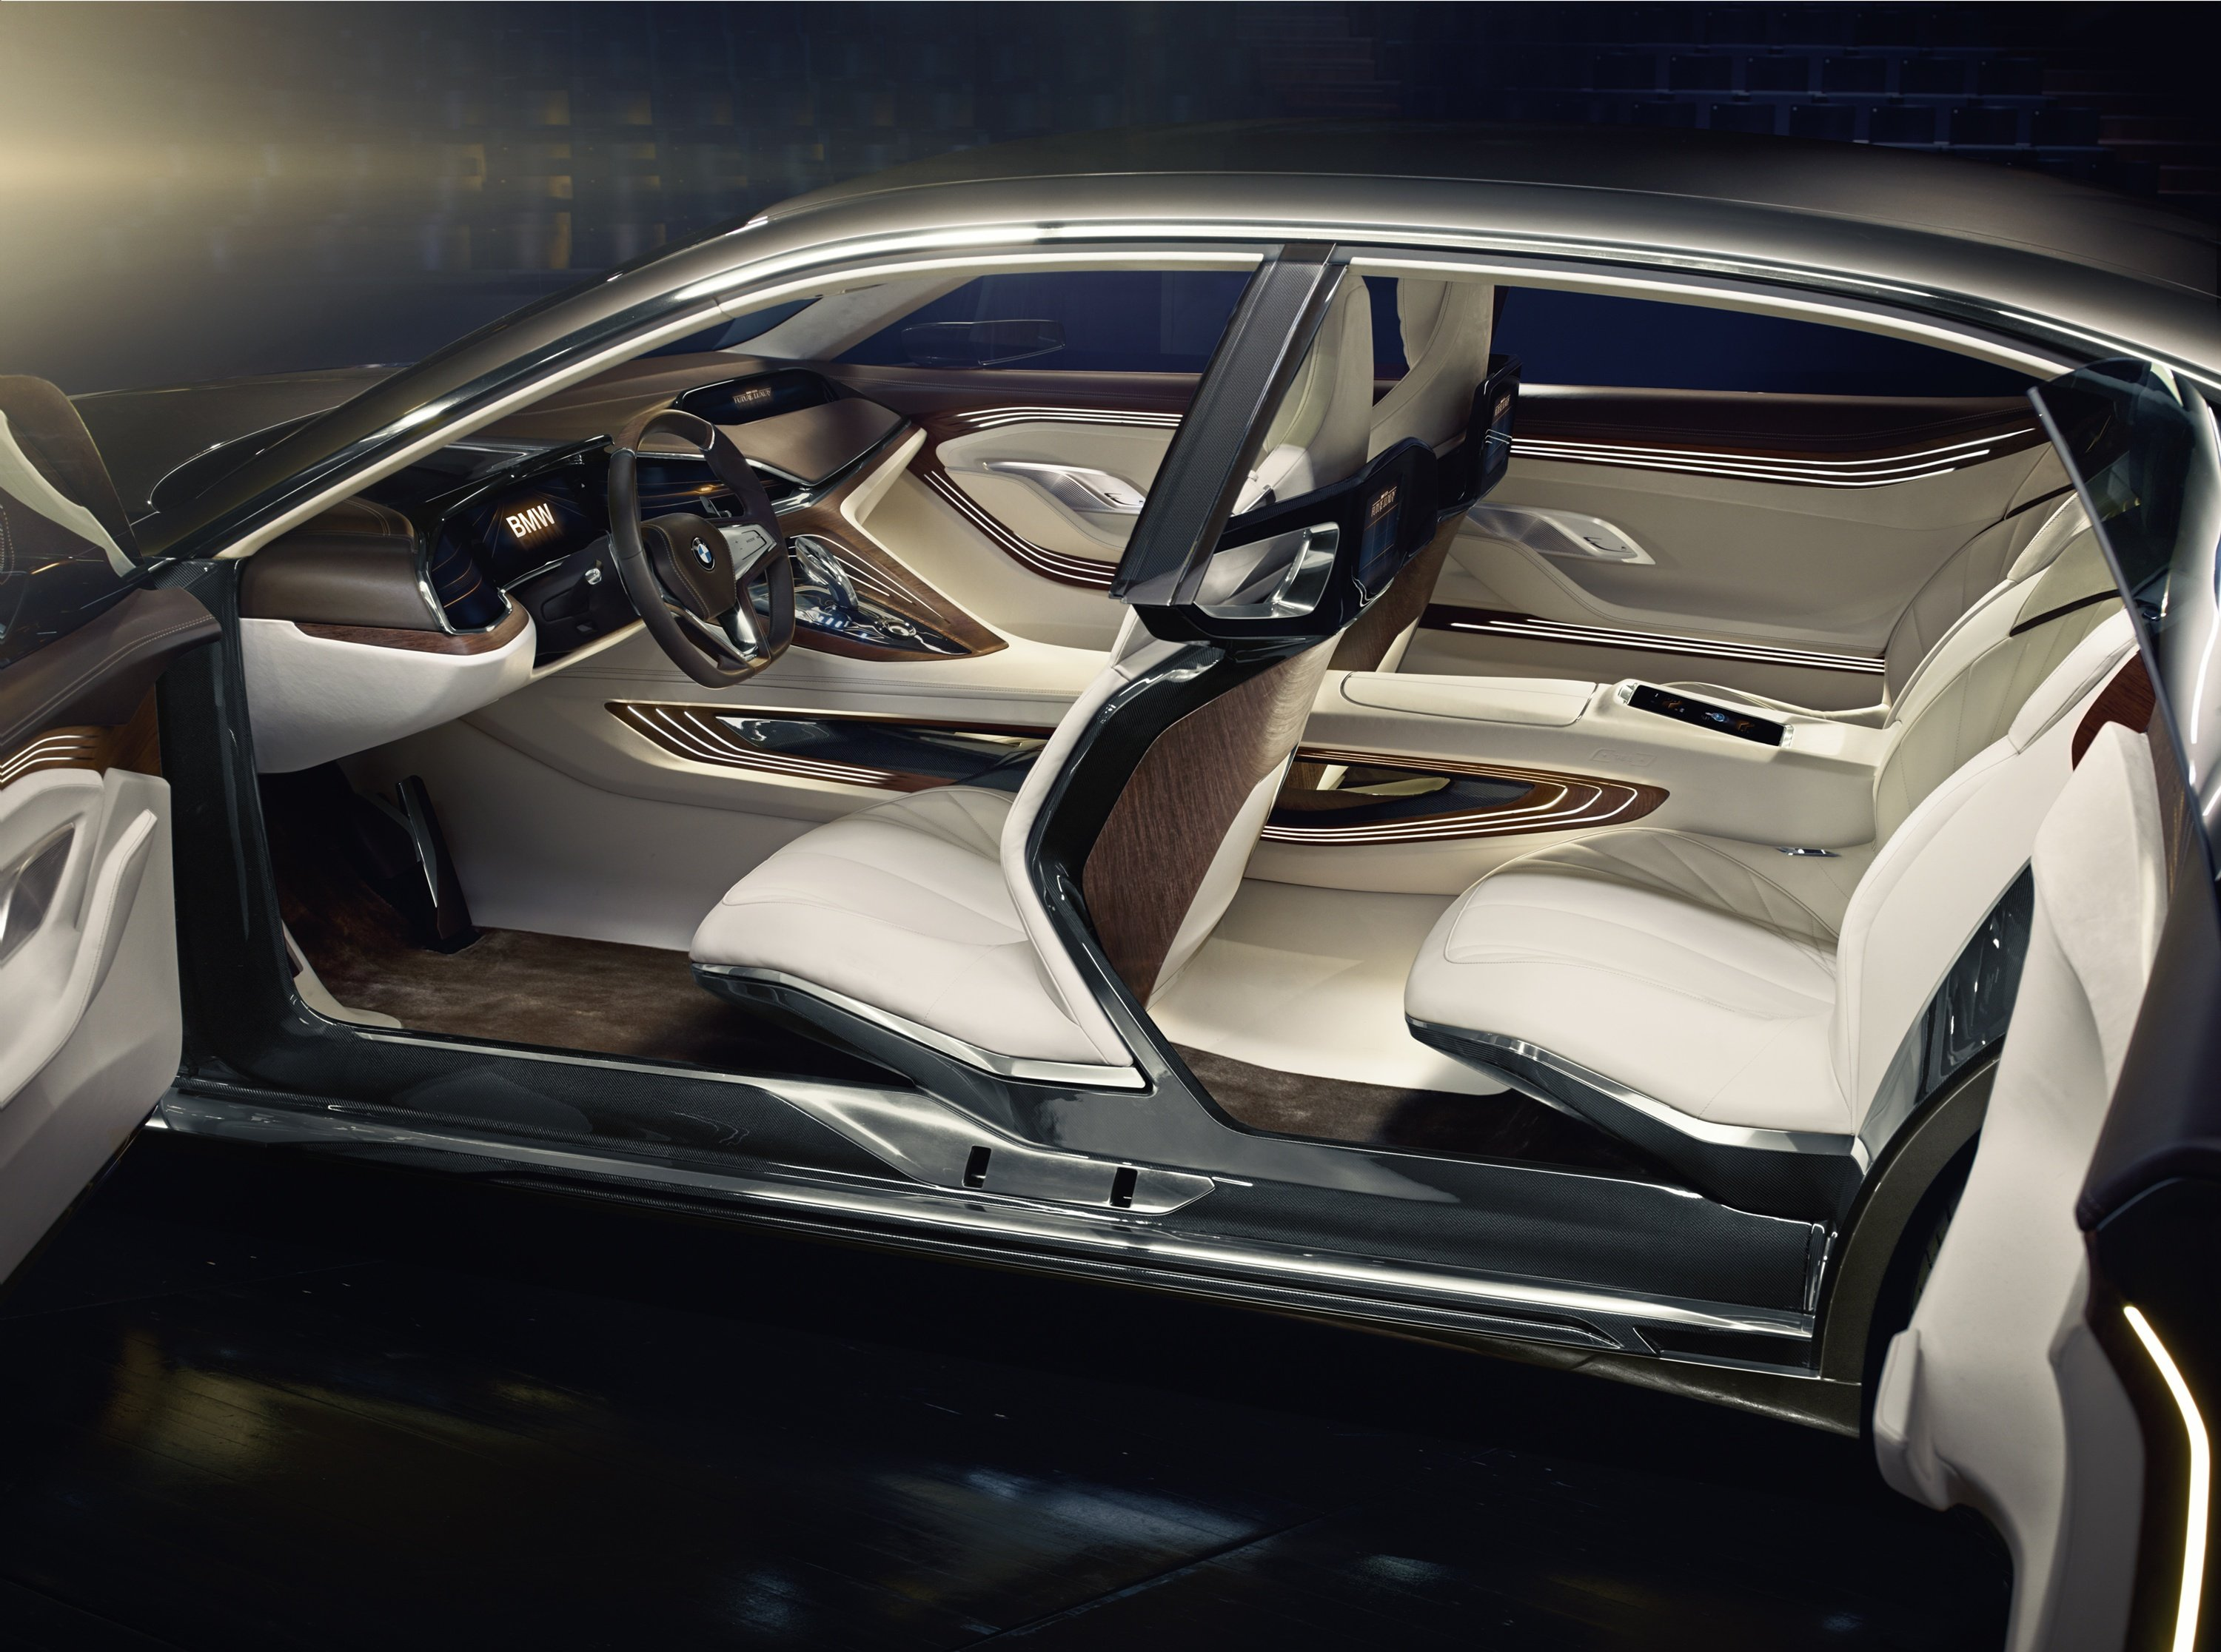 BMW_Vision_Future_Luxury_big_3000x2232